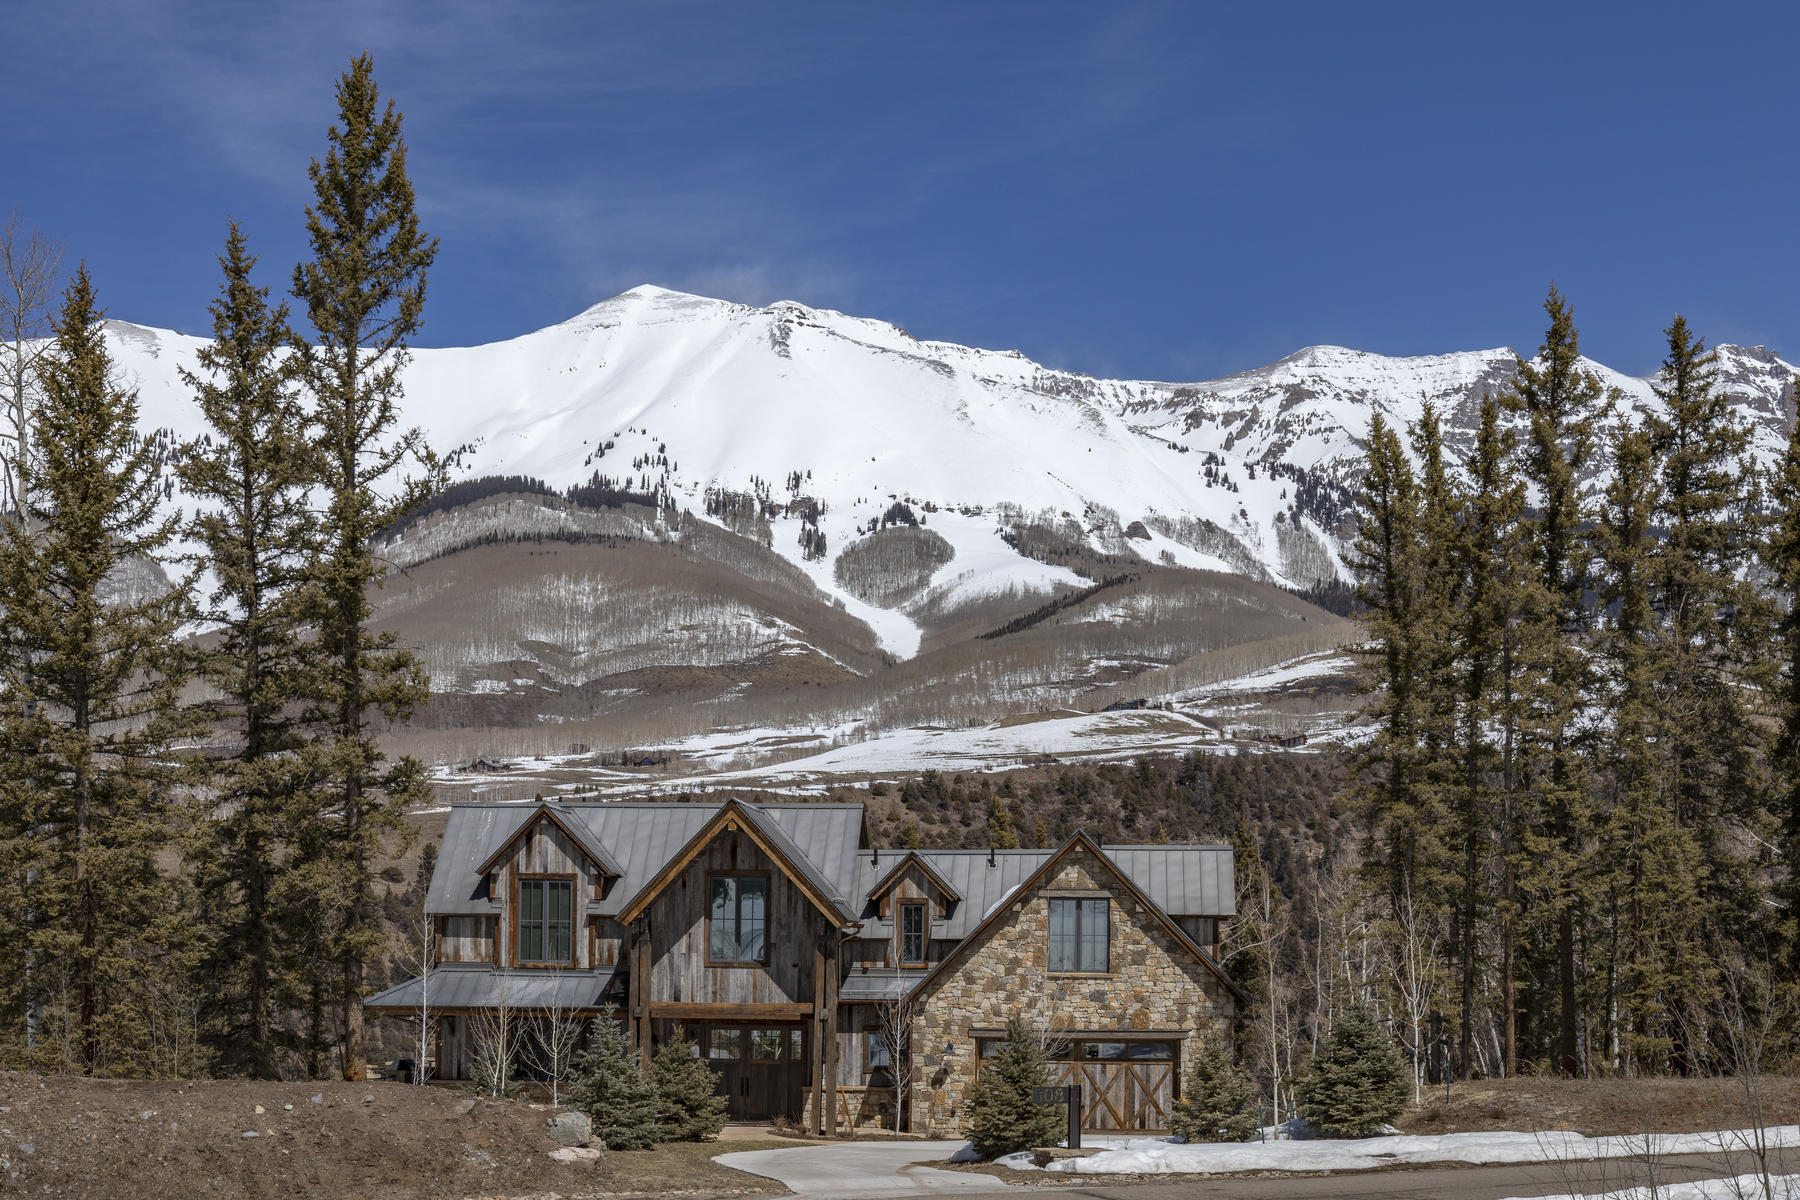 Single Family Homes for Sale at 108 Lawson Overlook Mountain Village, Colorado 81435 United States